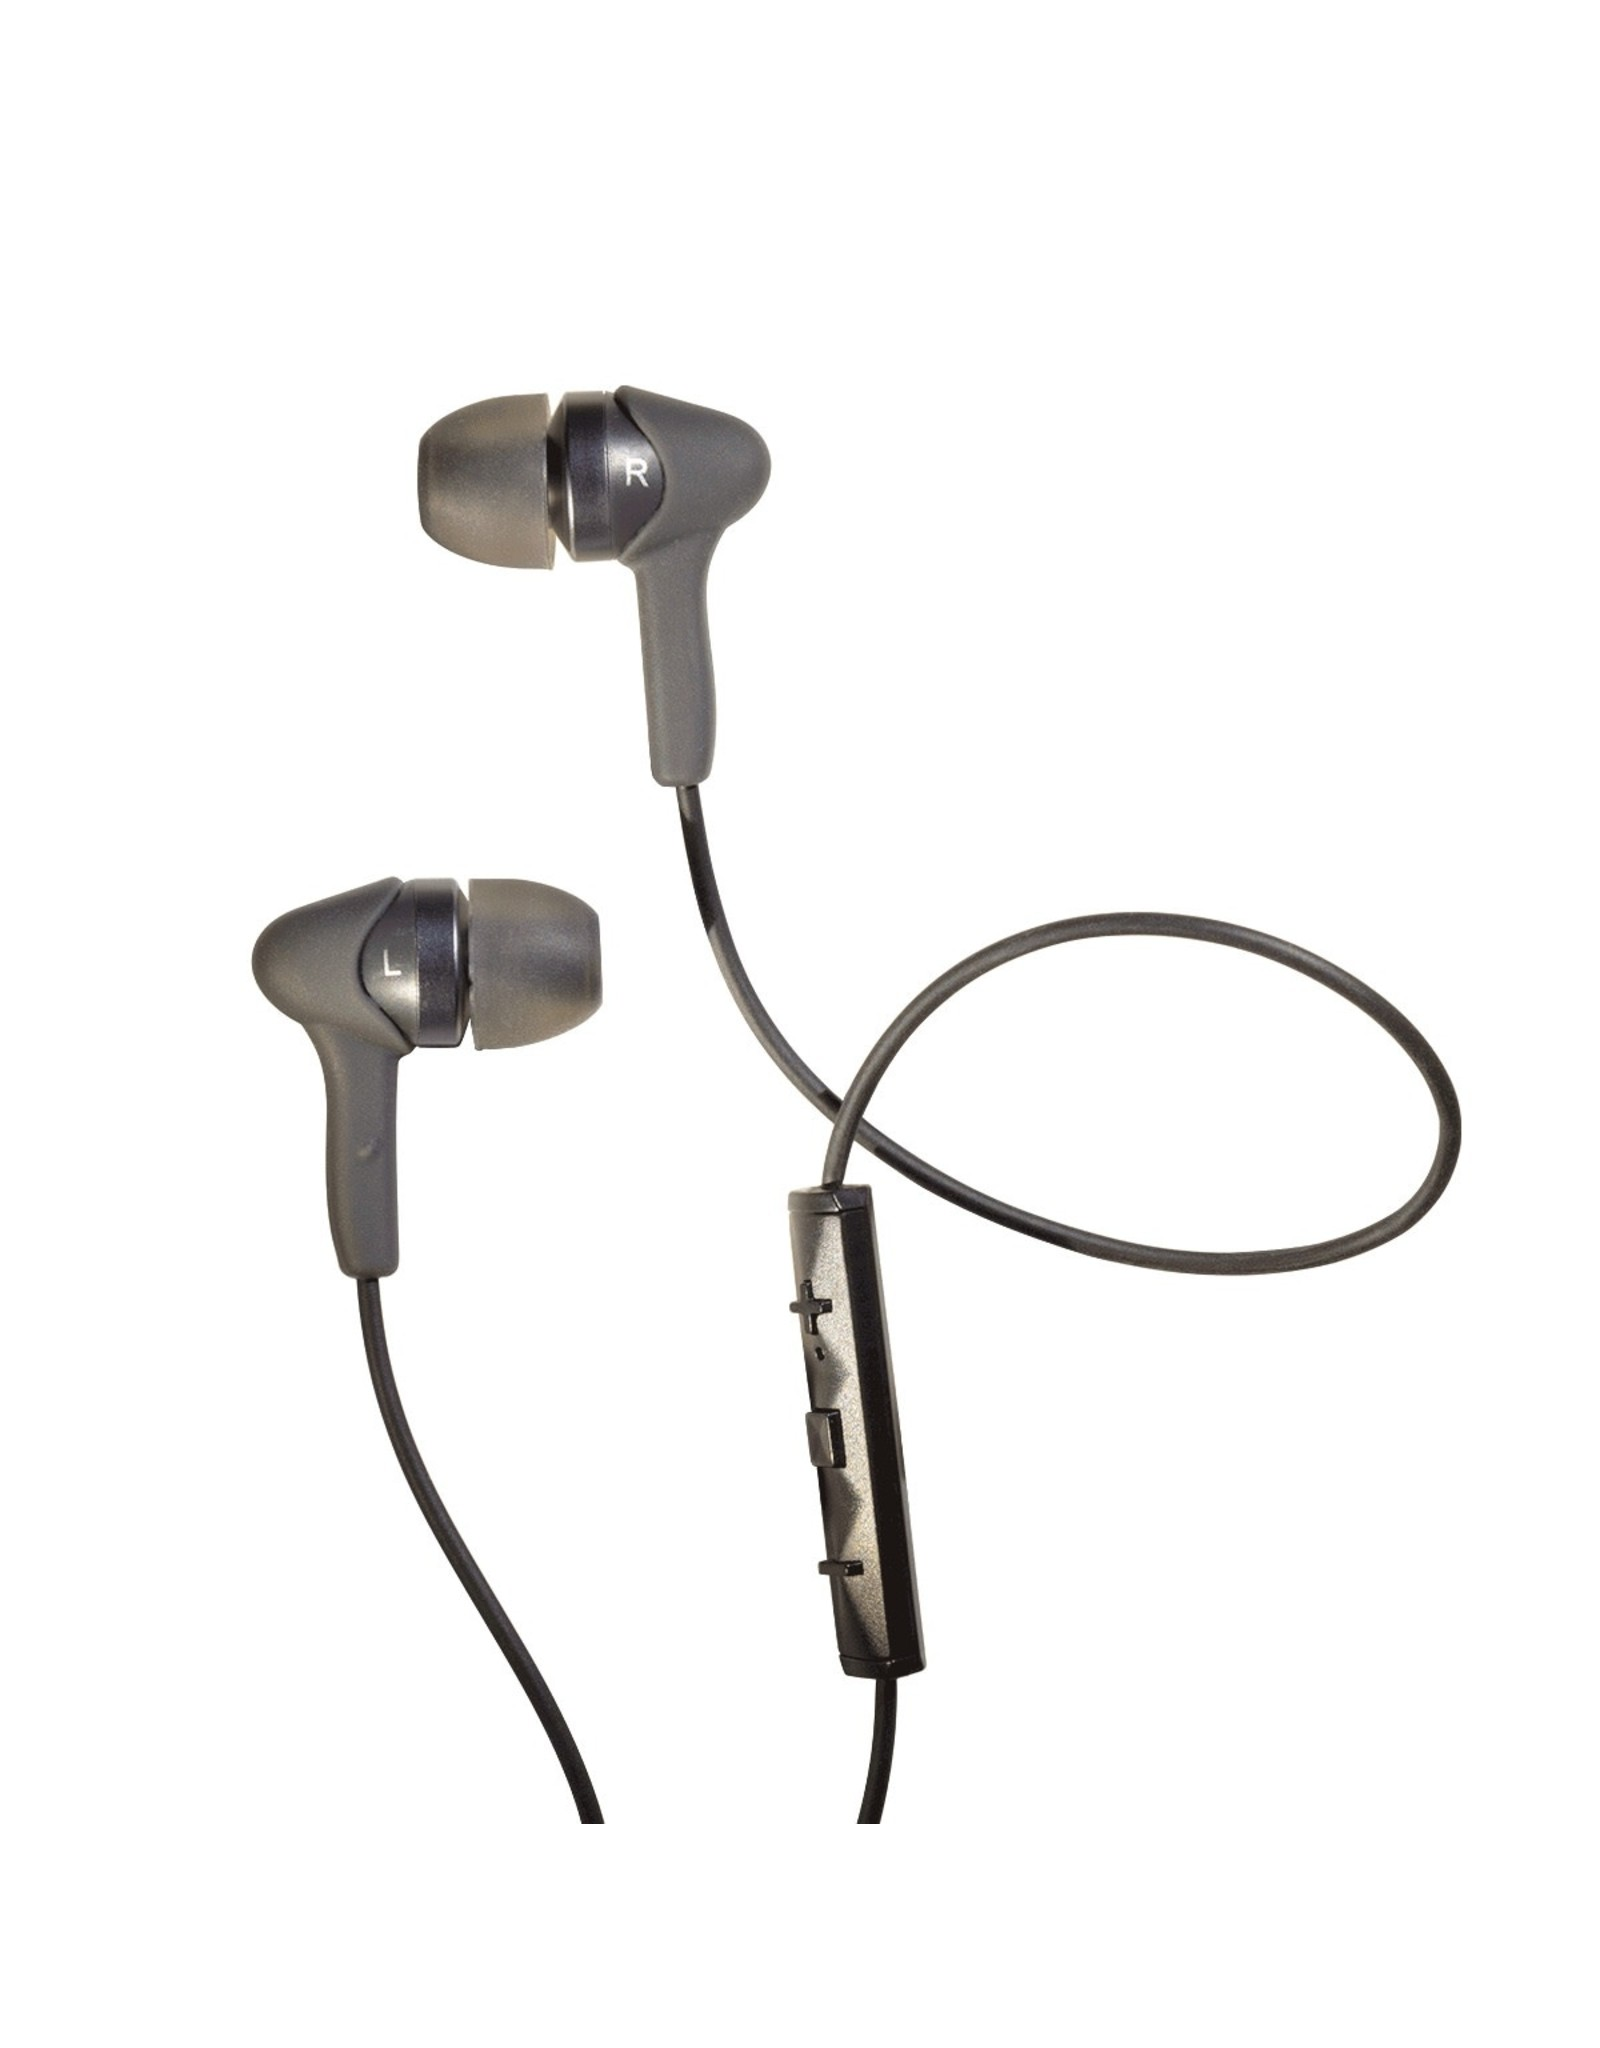 Grado Labs Grado iGe3 In-Ear Headphones